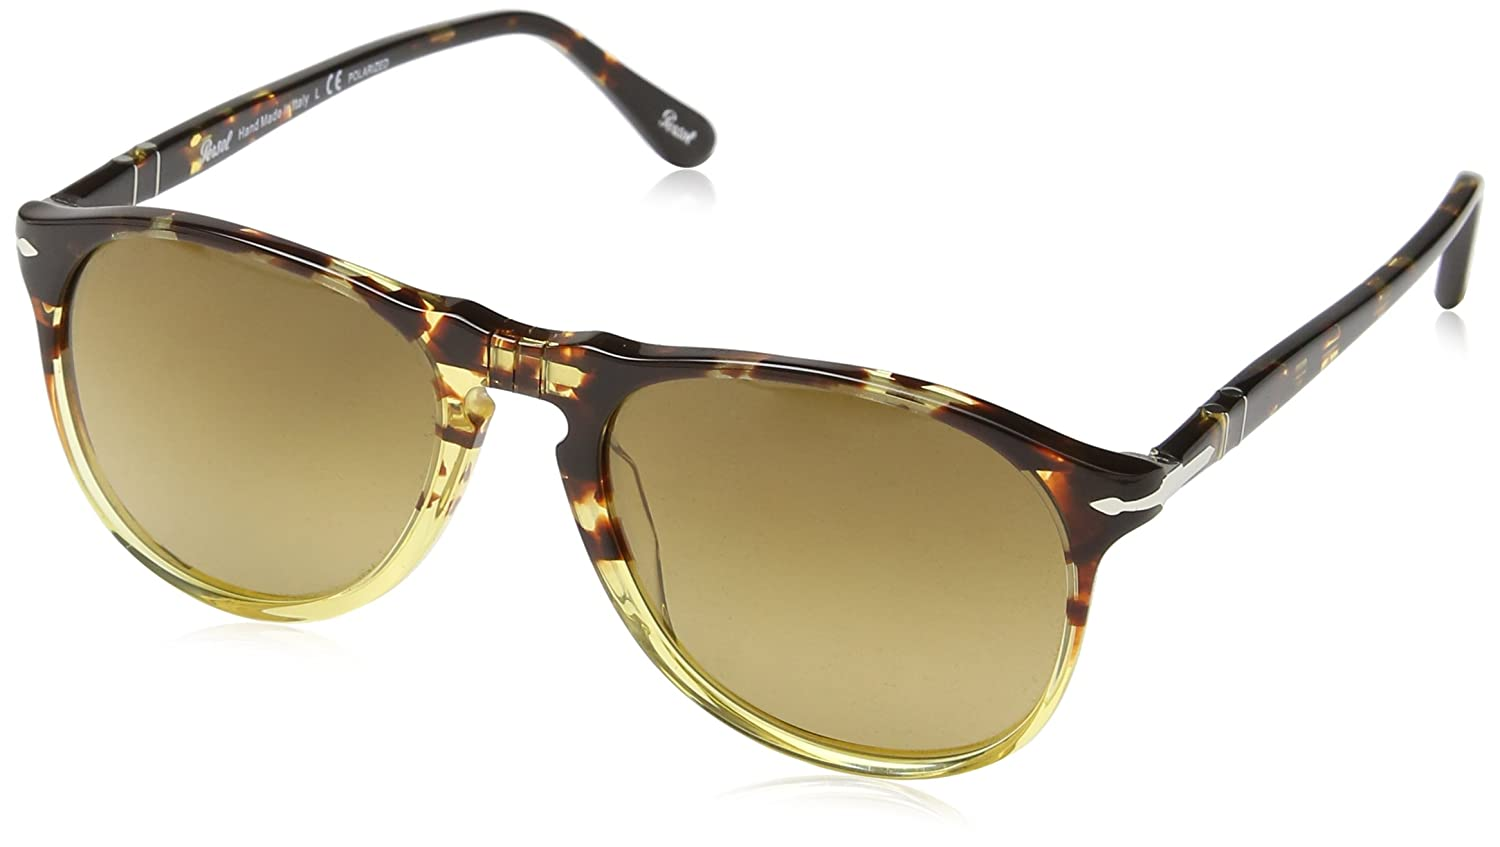 Persol 9649S 1024M2 Ebano E Oro 9649S Oval Sunglasses Polarised Lens Category  3  Amazon.in  Clothing   Accessories 5cac486bce